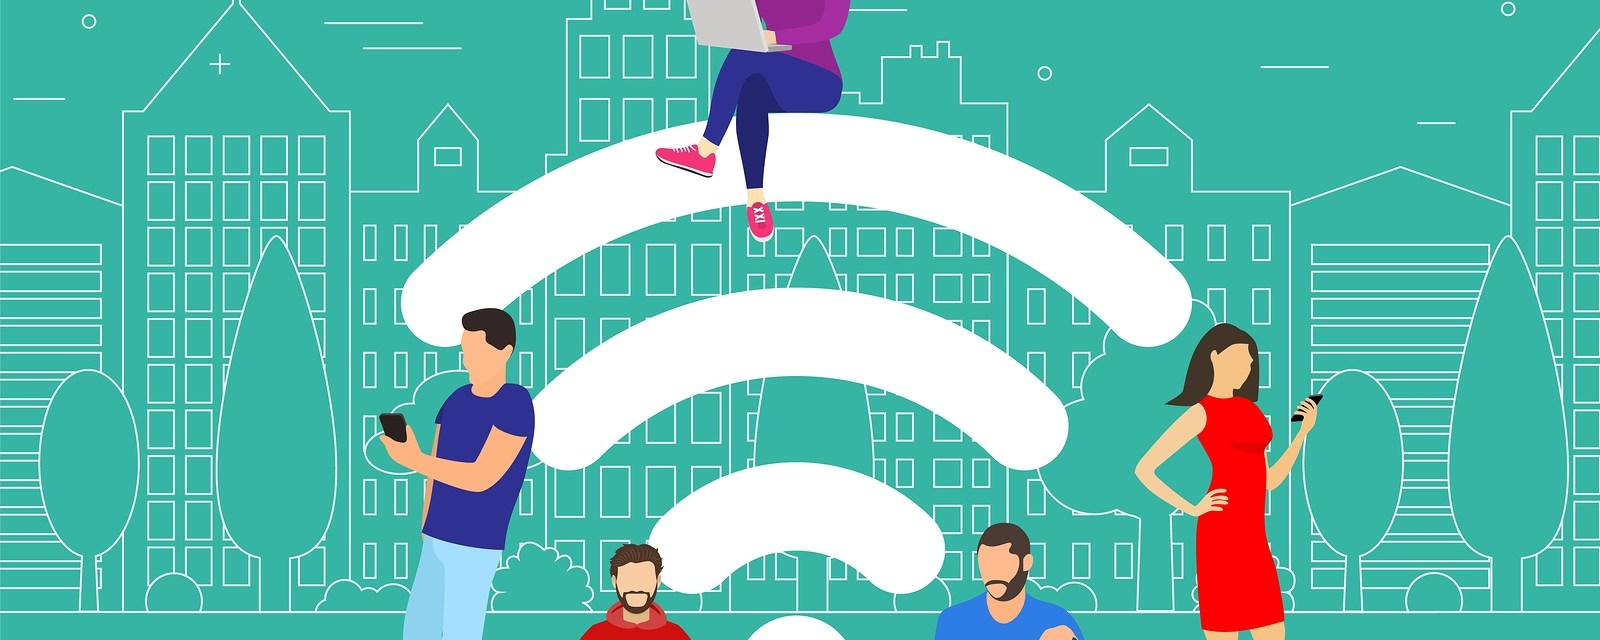 How does Public Wi-Fi Allow Cyber Thievery?